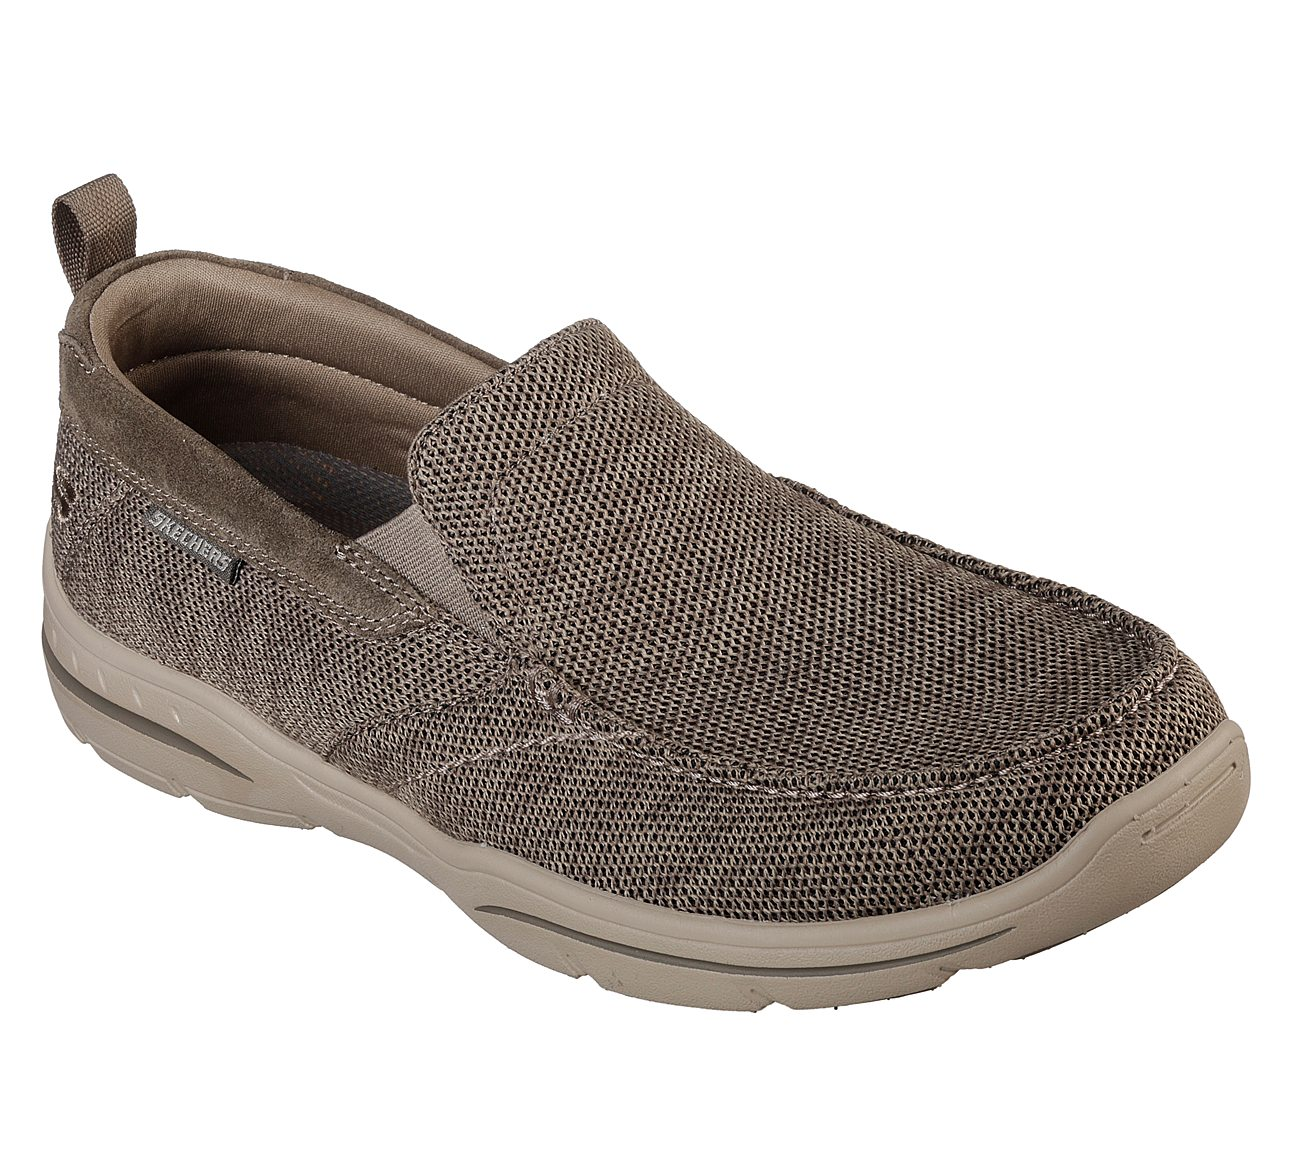 fd06a995b498 Buy SKECHERS Relaxed Fit  Harper - Deren Relaxed Fit Shoes only  70.00